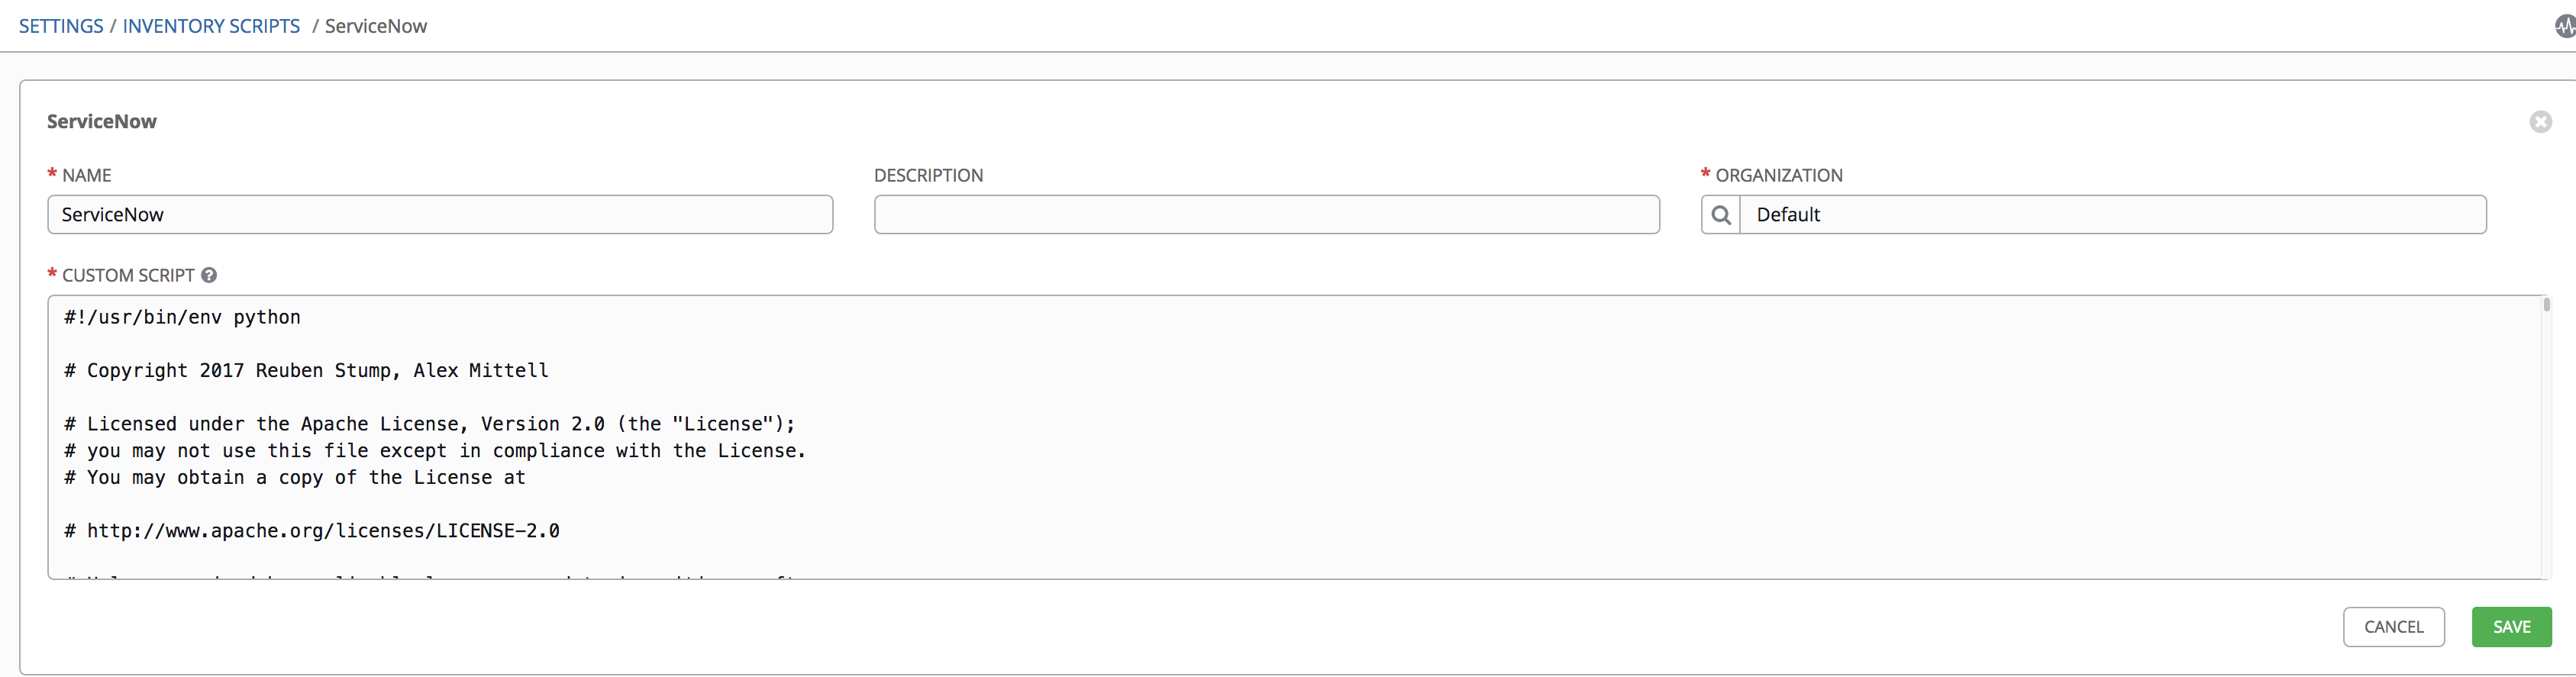 ServiceNow (snow) inventory for Ansible Tower 3 2 1